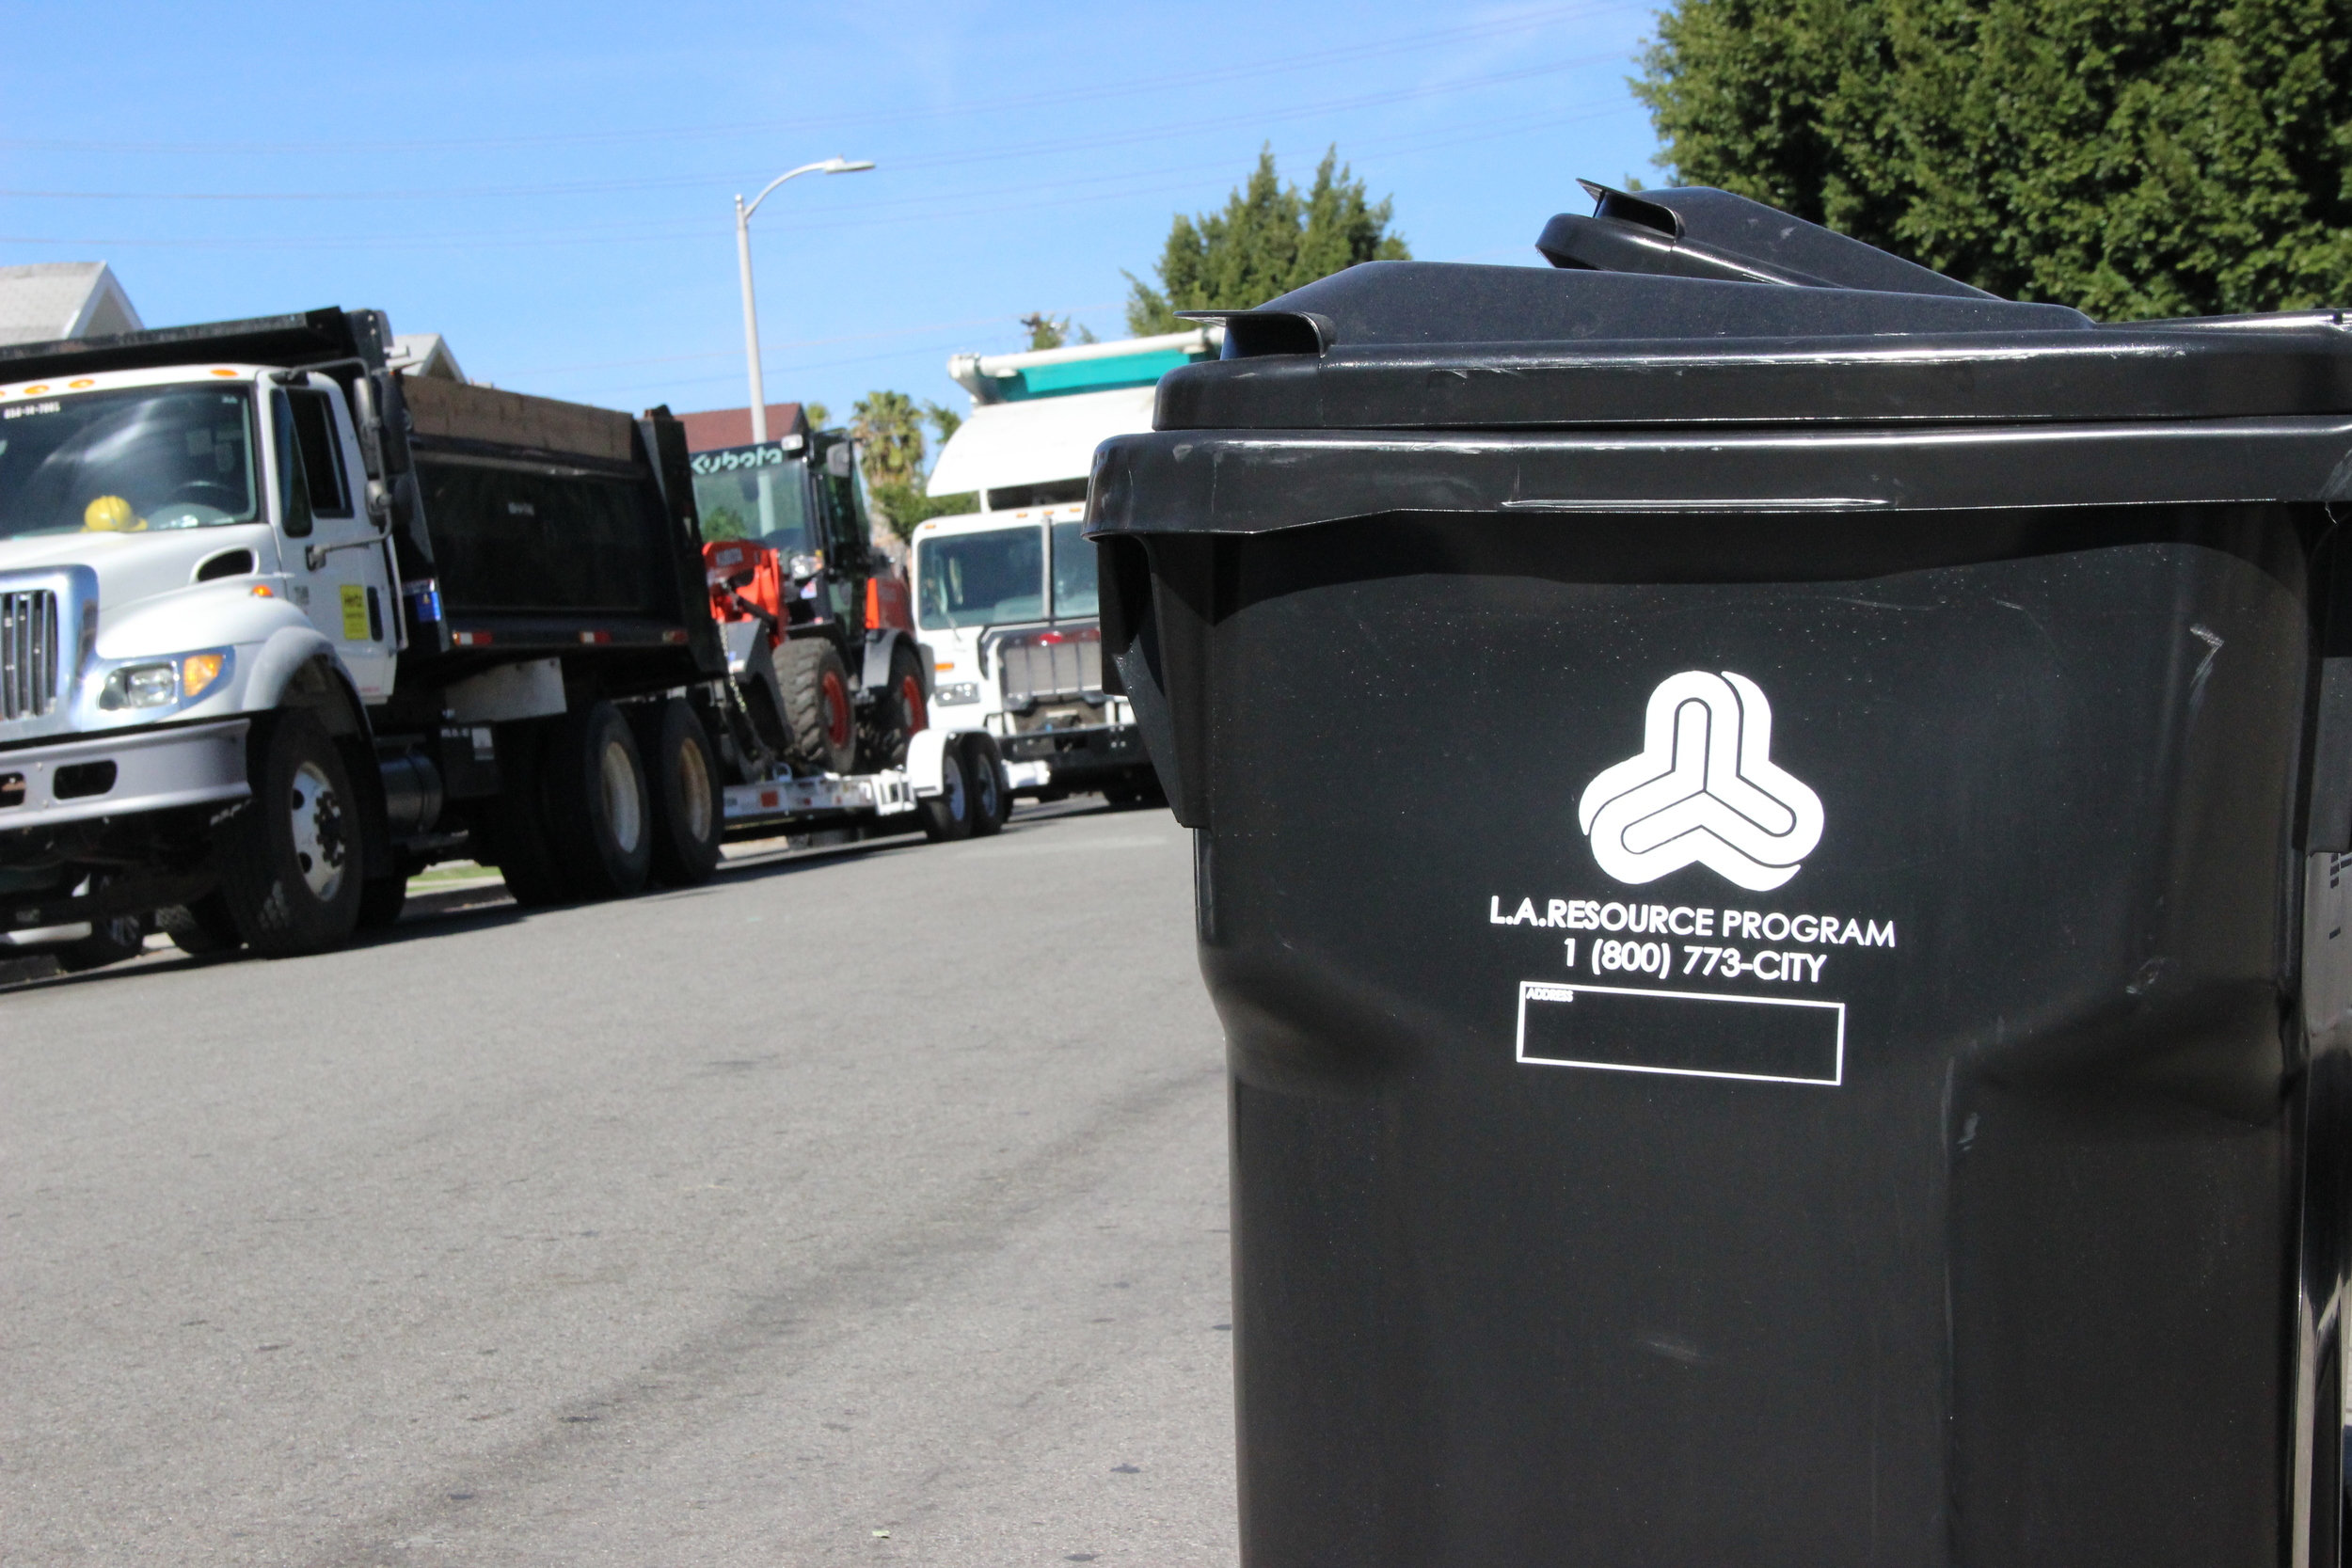 Clean Streets L.A. crews removed, transported and delivered to landfill more than 4,600 tons or 9.3 million pounds of trash and debris between July 2015 and December 2015.